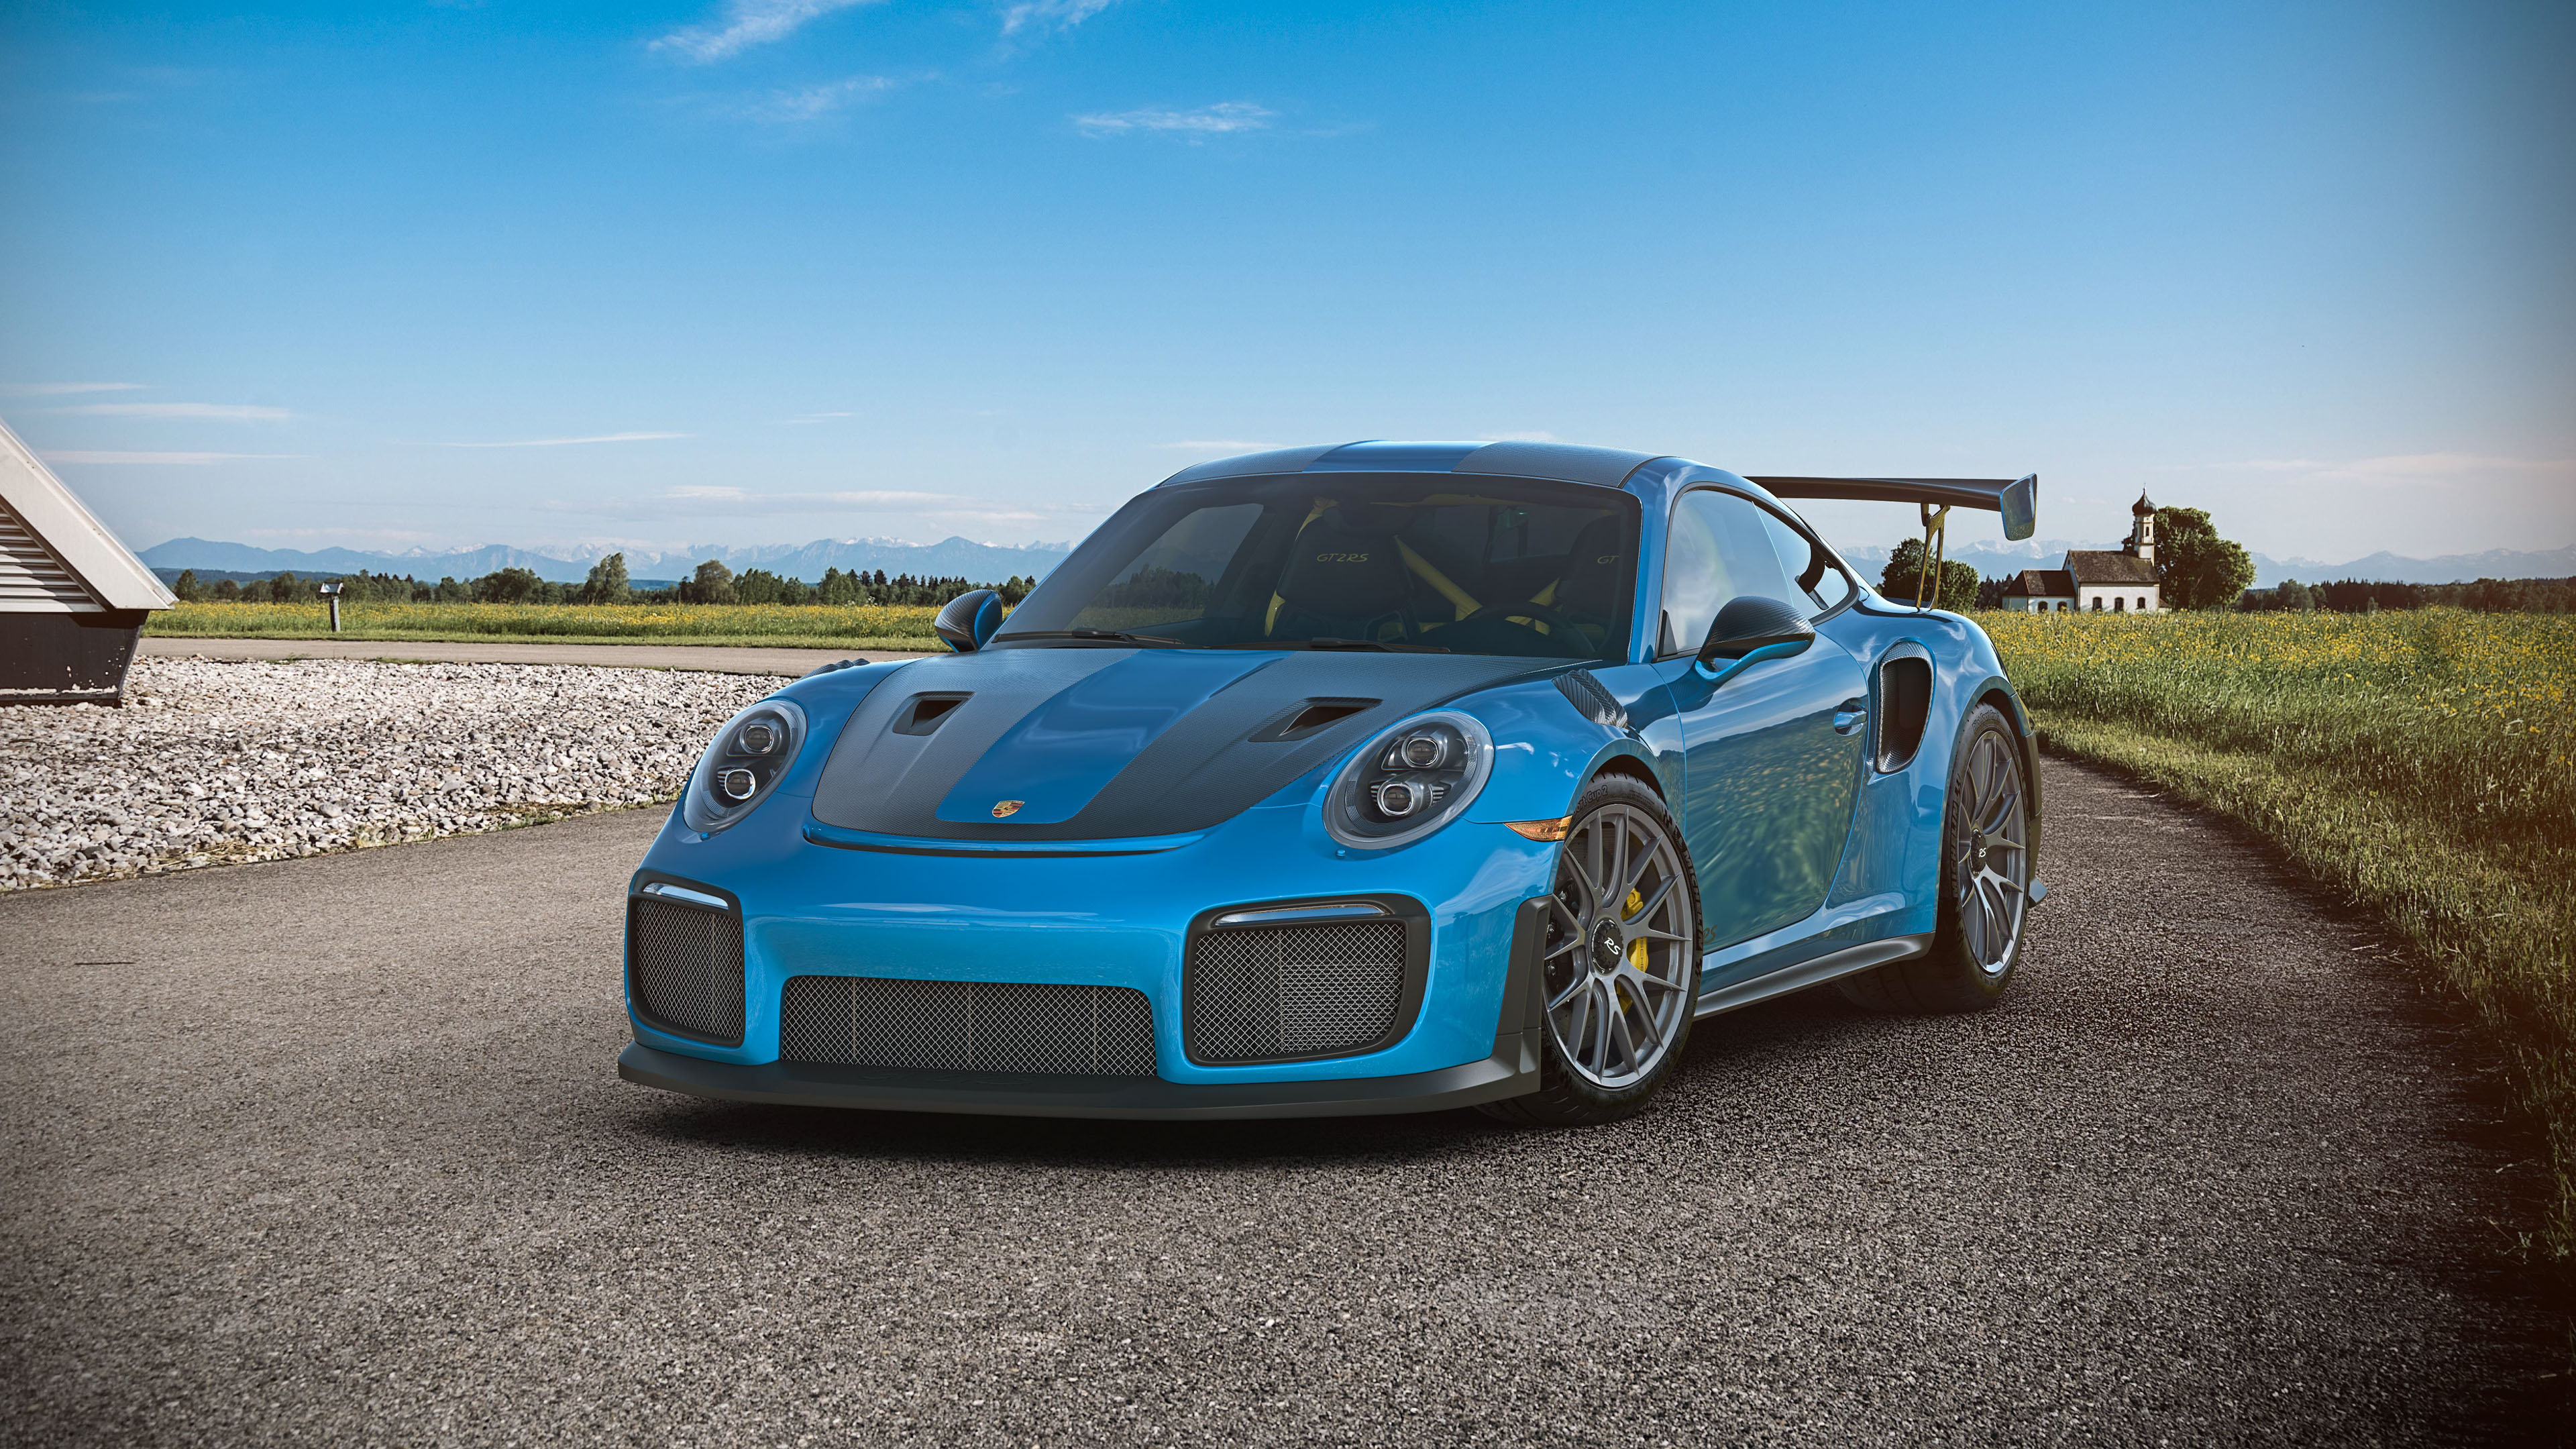 cgi porsche gt2 rs 4k 1546362630 - CGI Porsche GT2 RS 4k - porsche wallpapers, porsche 911 wallpapers, porsche 911 gt2 r wallpapers, hd-wallpapers, cars wallpapers, behance wallpapers, artist wallpapers, 4k-wallpapers, 2018 cars wallpapers